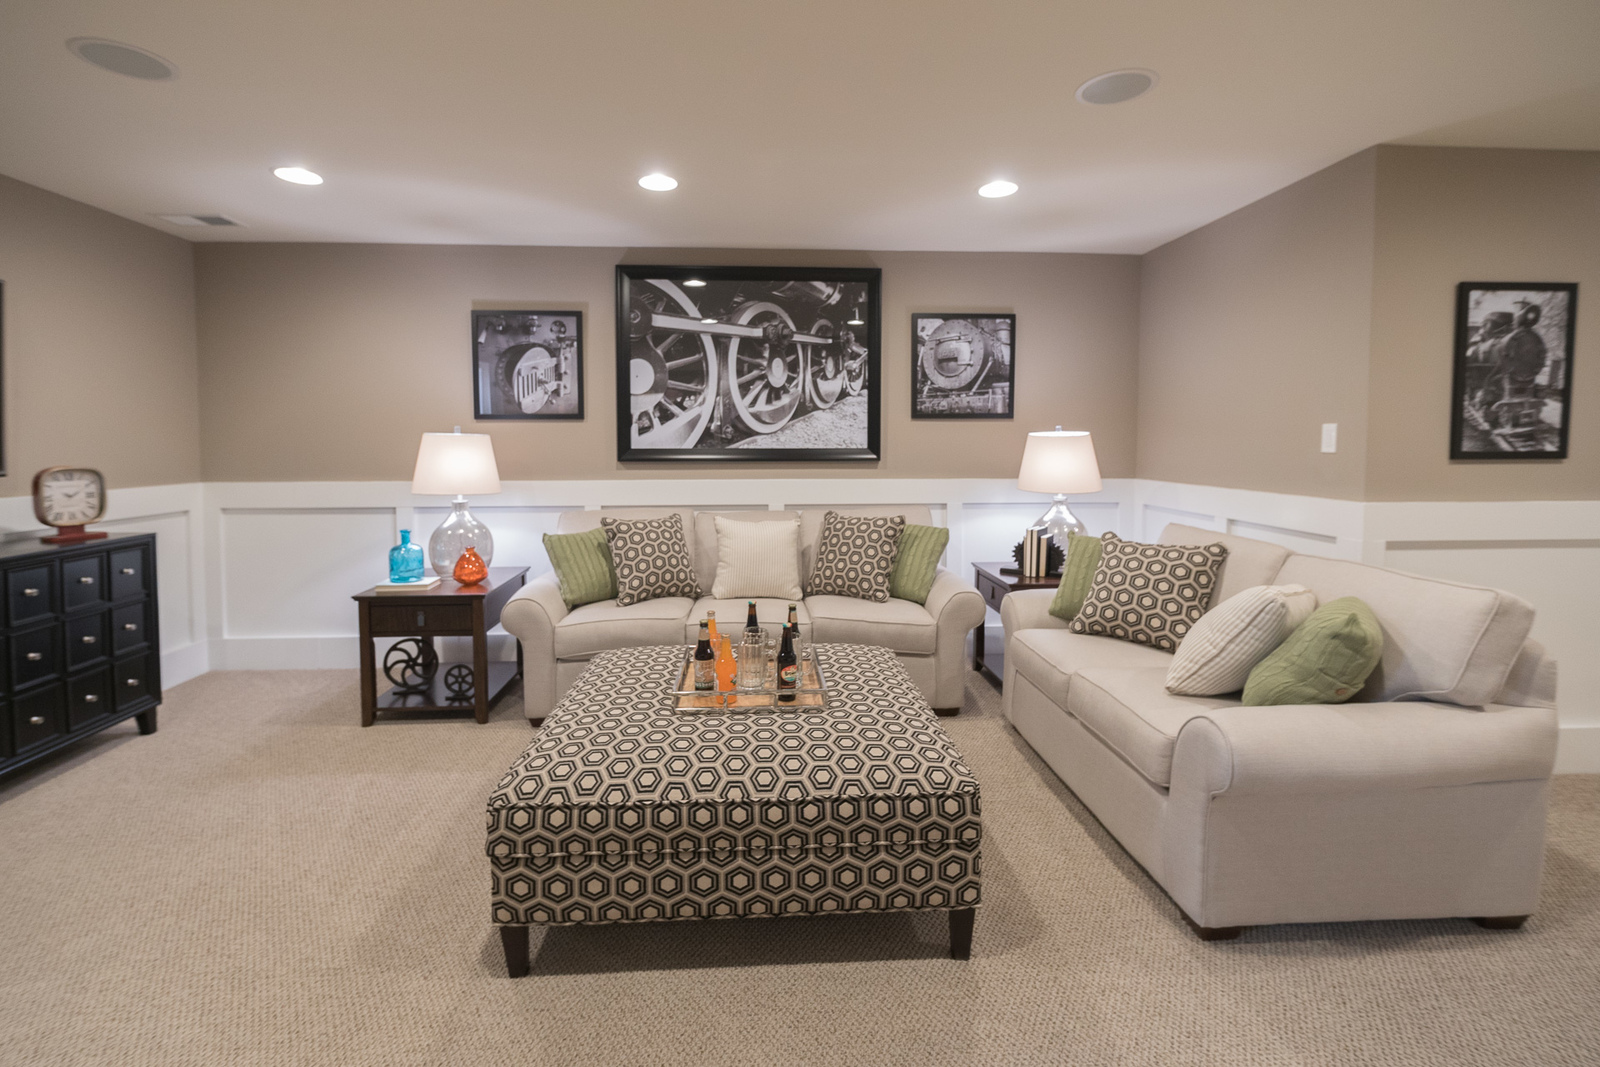 A finished basement provides the additional space you're looking for to create the ultimate entertainment spot